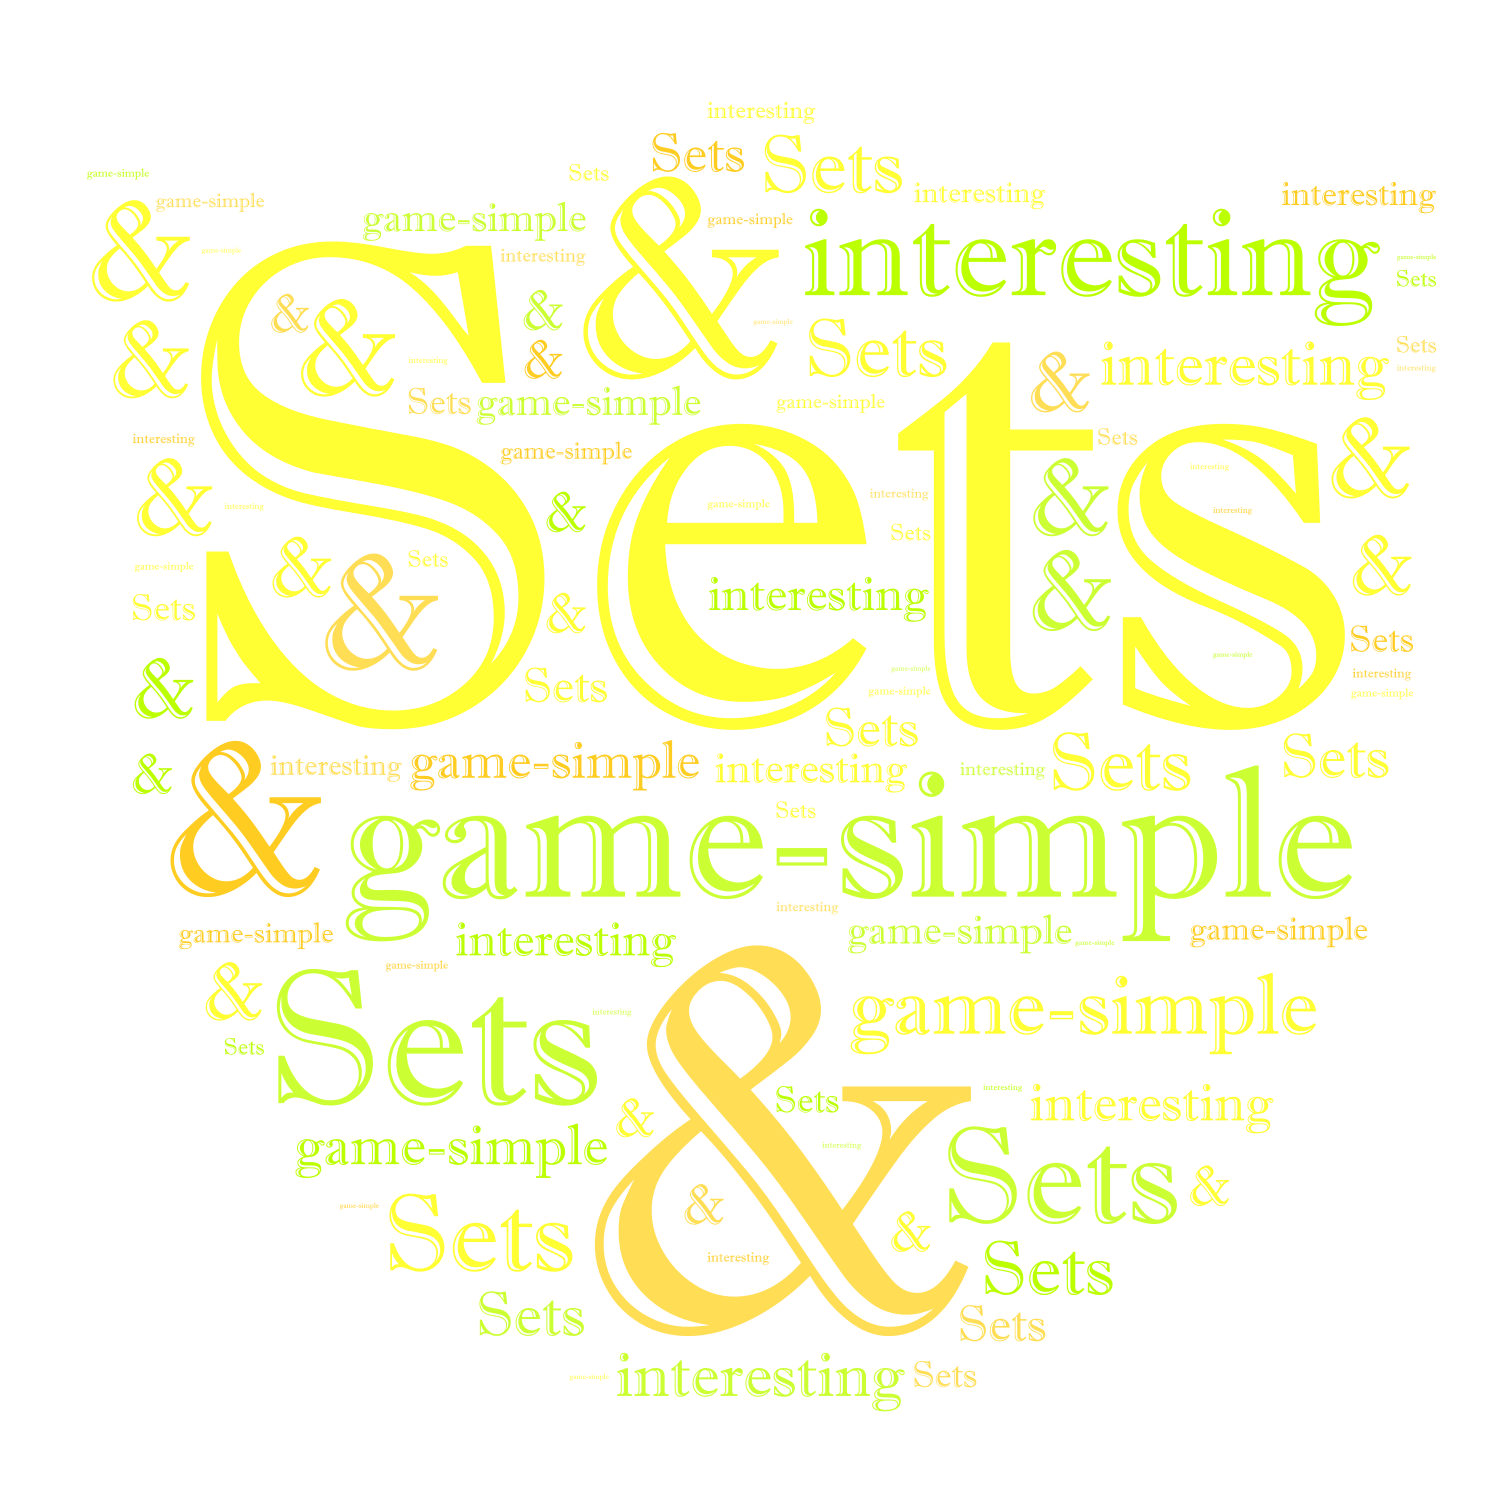 Sets game-simple & interesting